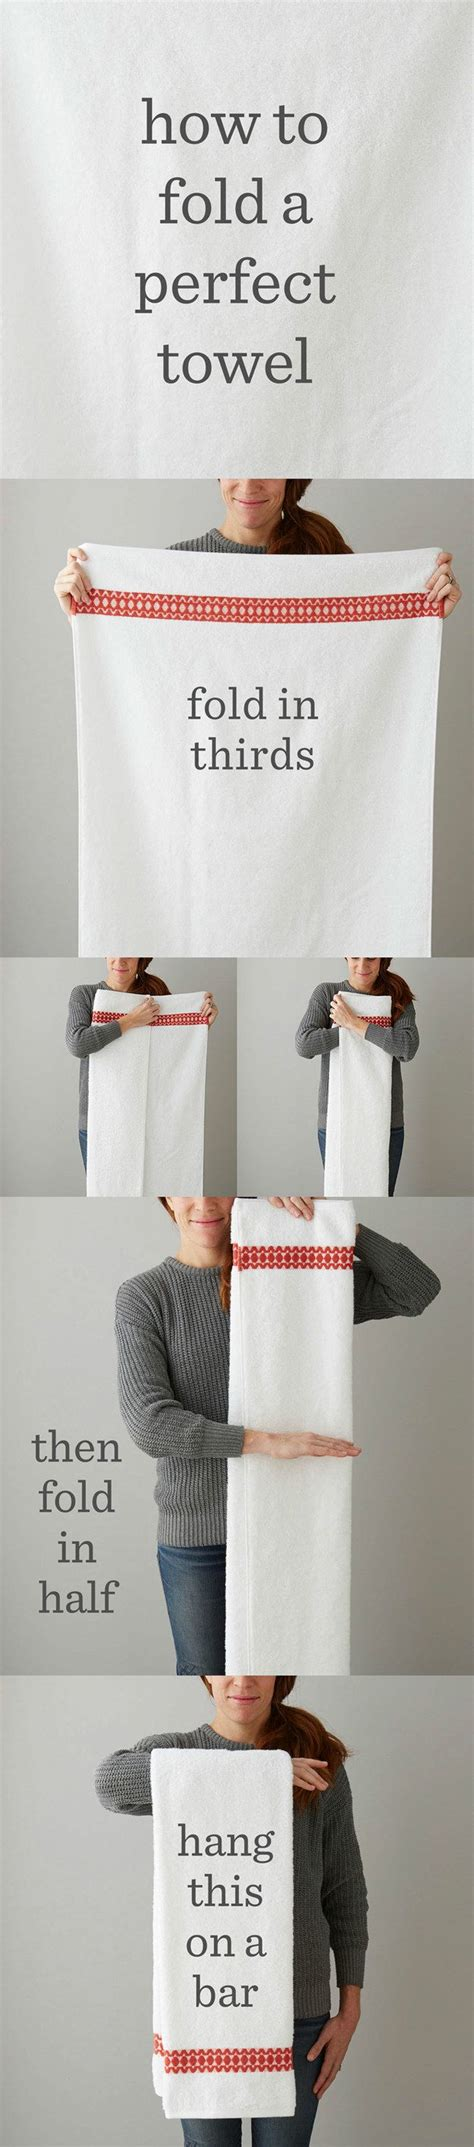 how to fold bathroom towels decoratively 17 best ideas about folding bath towels on pinterest how